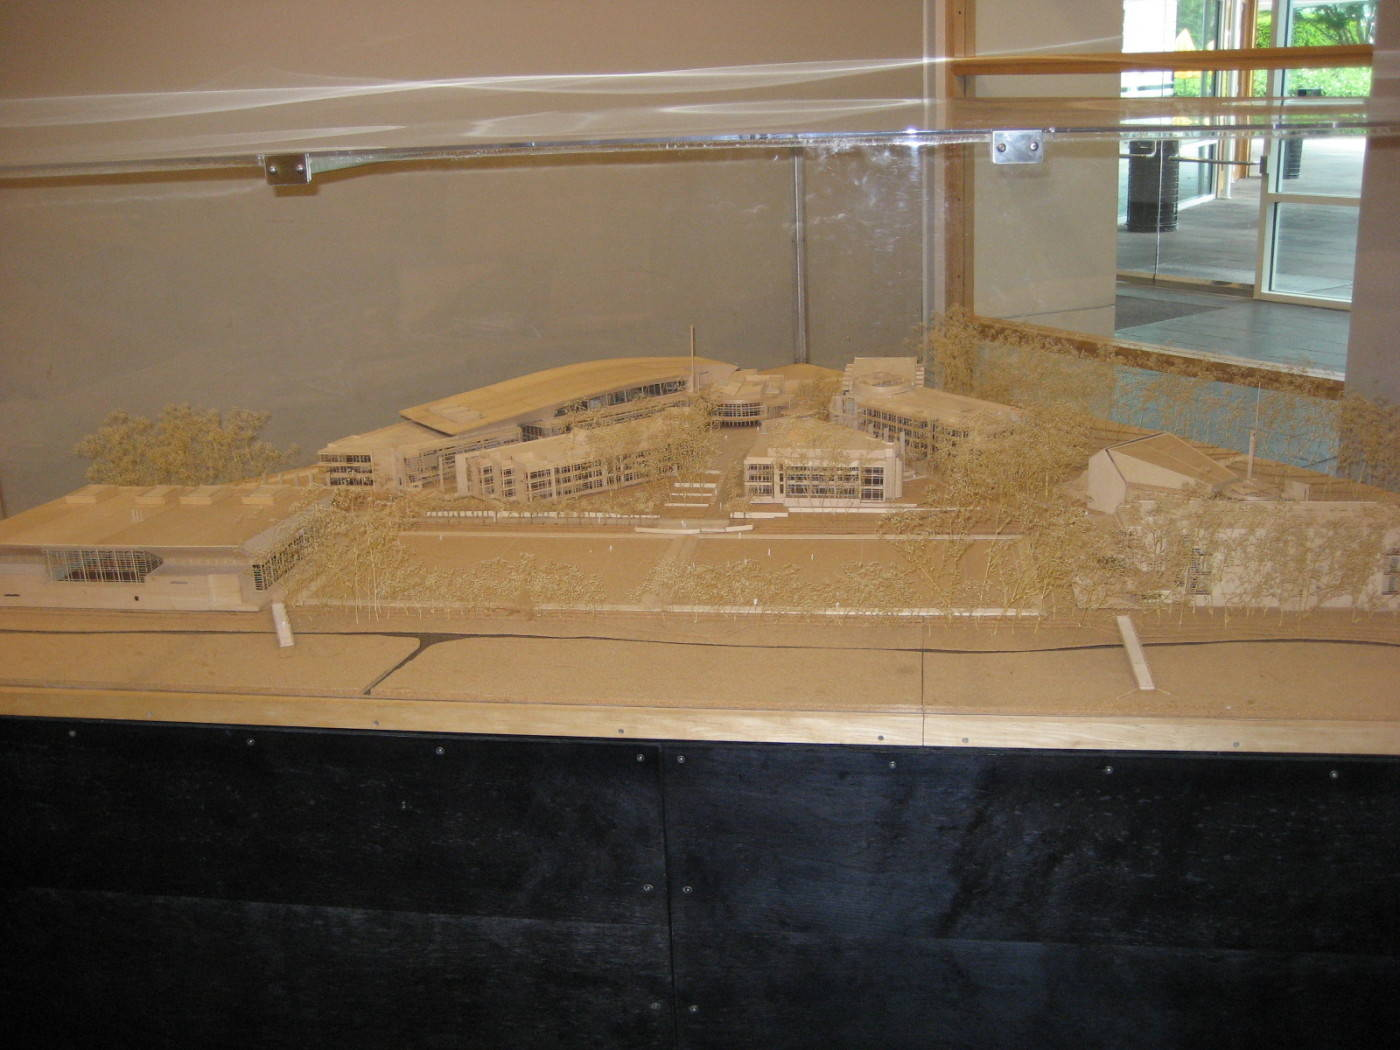 Model of the Nike Campus